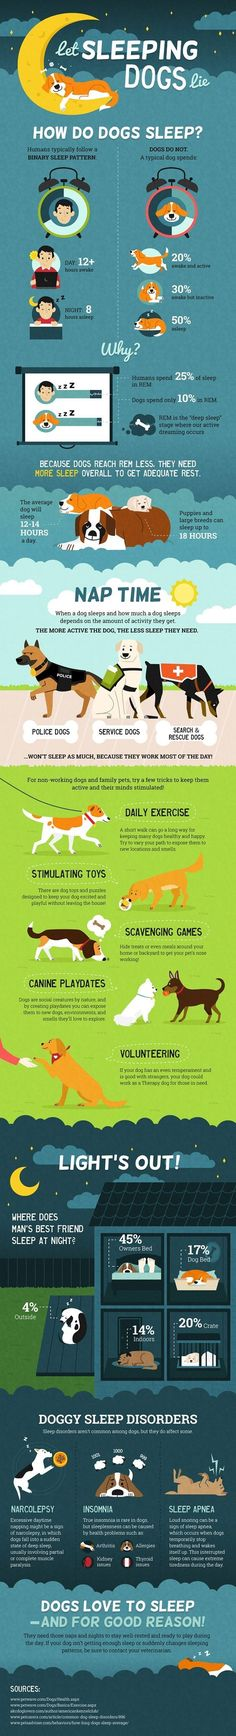 Dog Infographic: Let Sleeping Dogs Lie http://www.dailydogtag.com/lifestyle/let-sleeping-dogs-lie-but-how-much-sleep-do-dogs-need/?utm_content=buffer2d1b5&utm_medium=social&utm_source=pinterest.com&utm_campaign=buffer#_a5y_p=4157036: